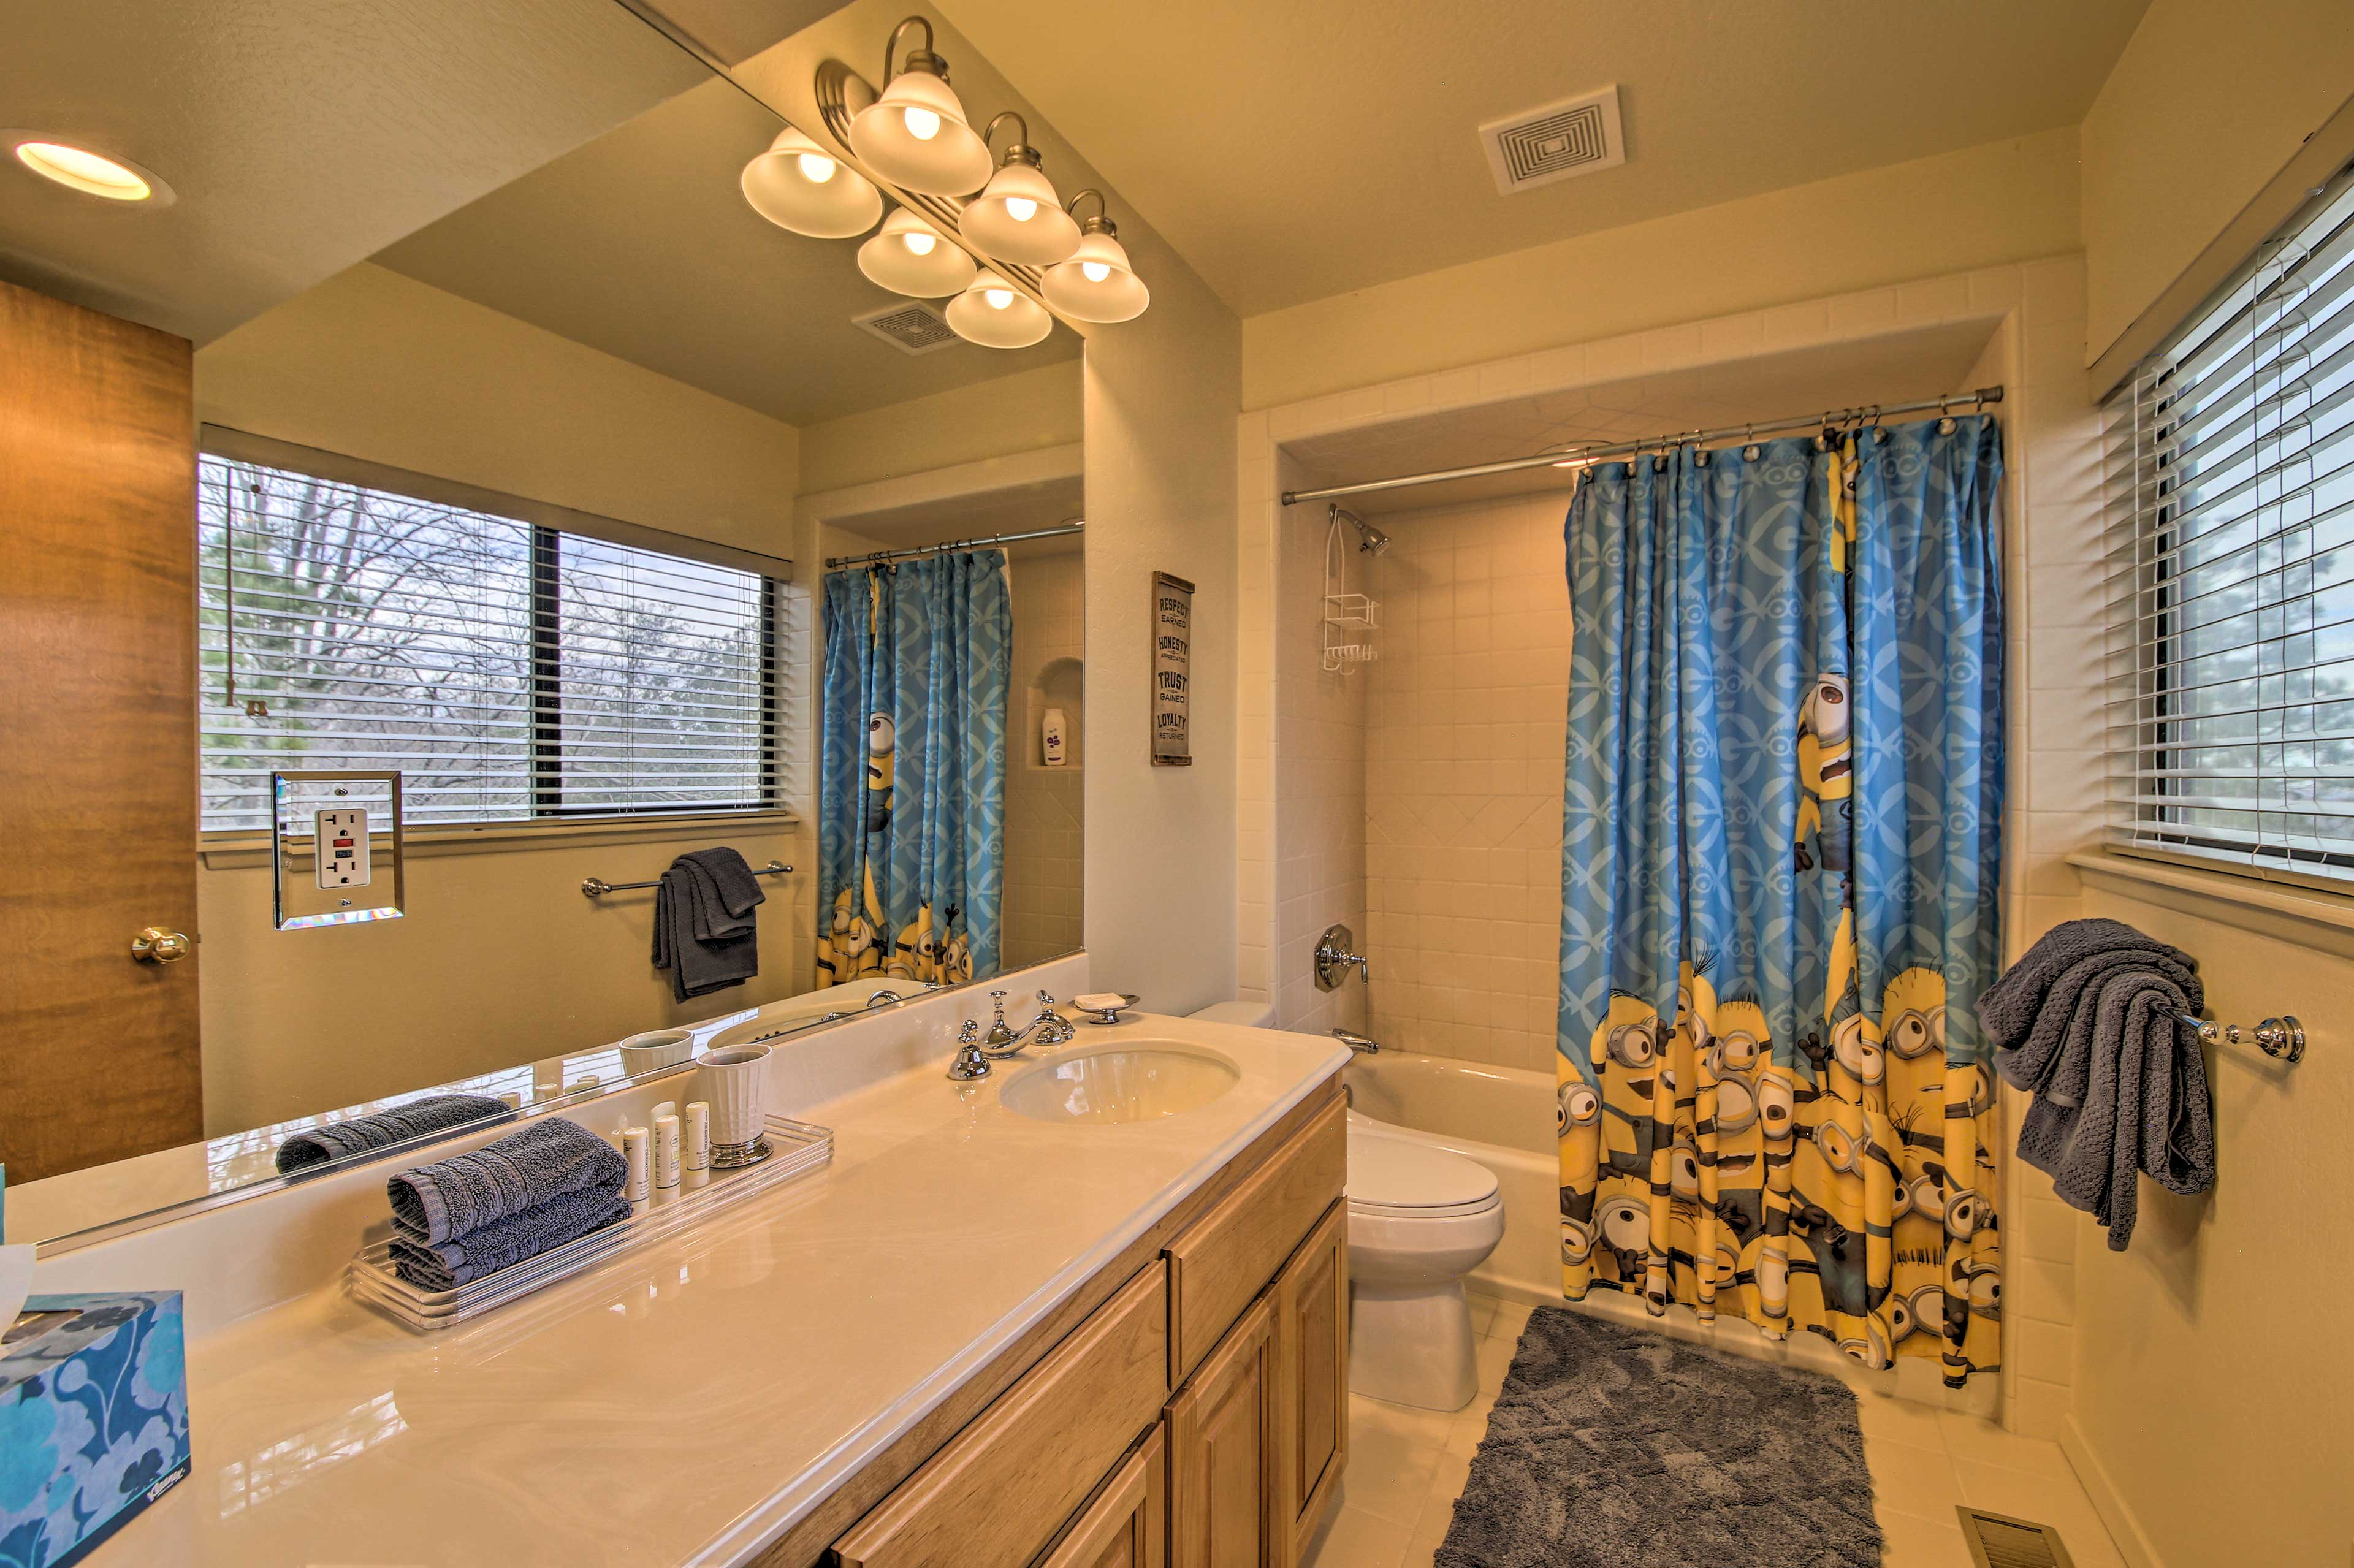 Get ready in this bathroom before heading out for the day.